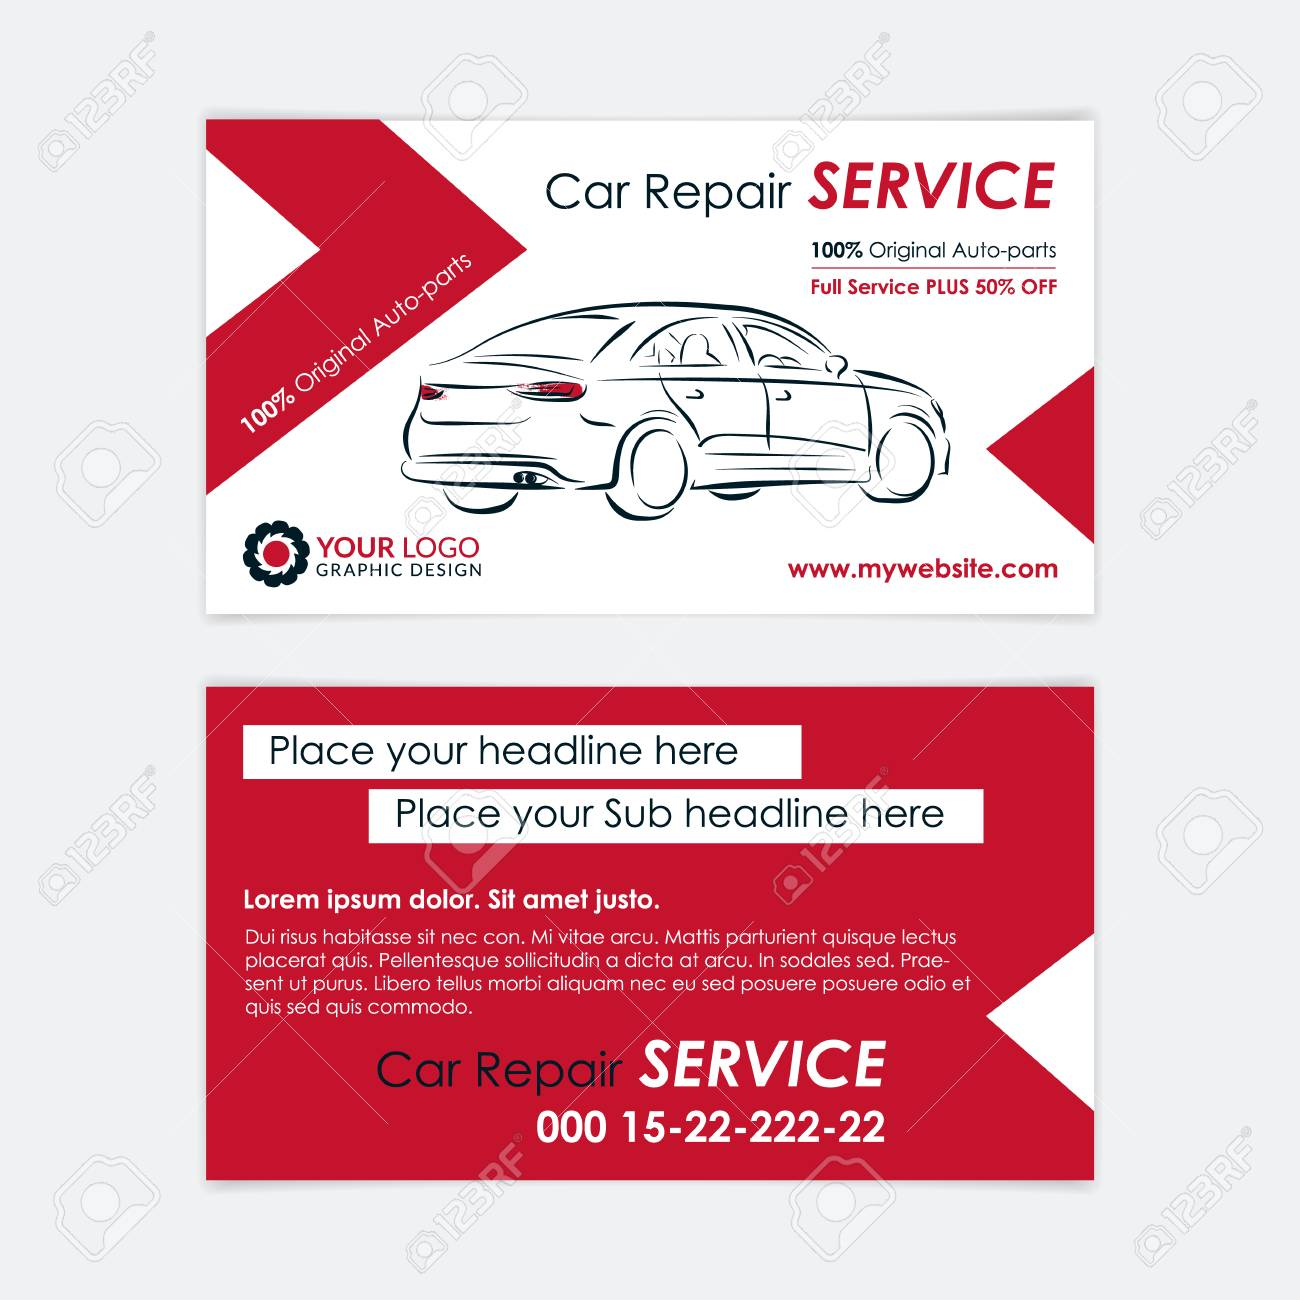 Auto repair business card template create your own business auto repair business card template create your own business cards mockup vector illustration colourmoves